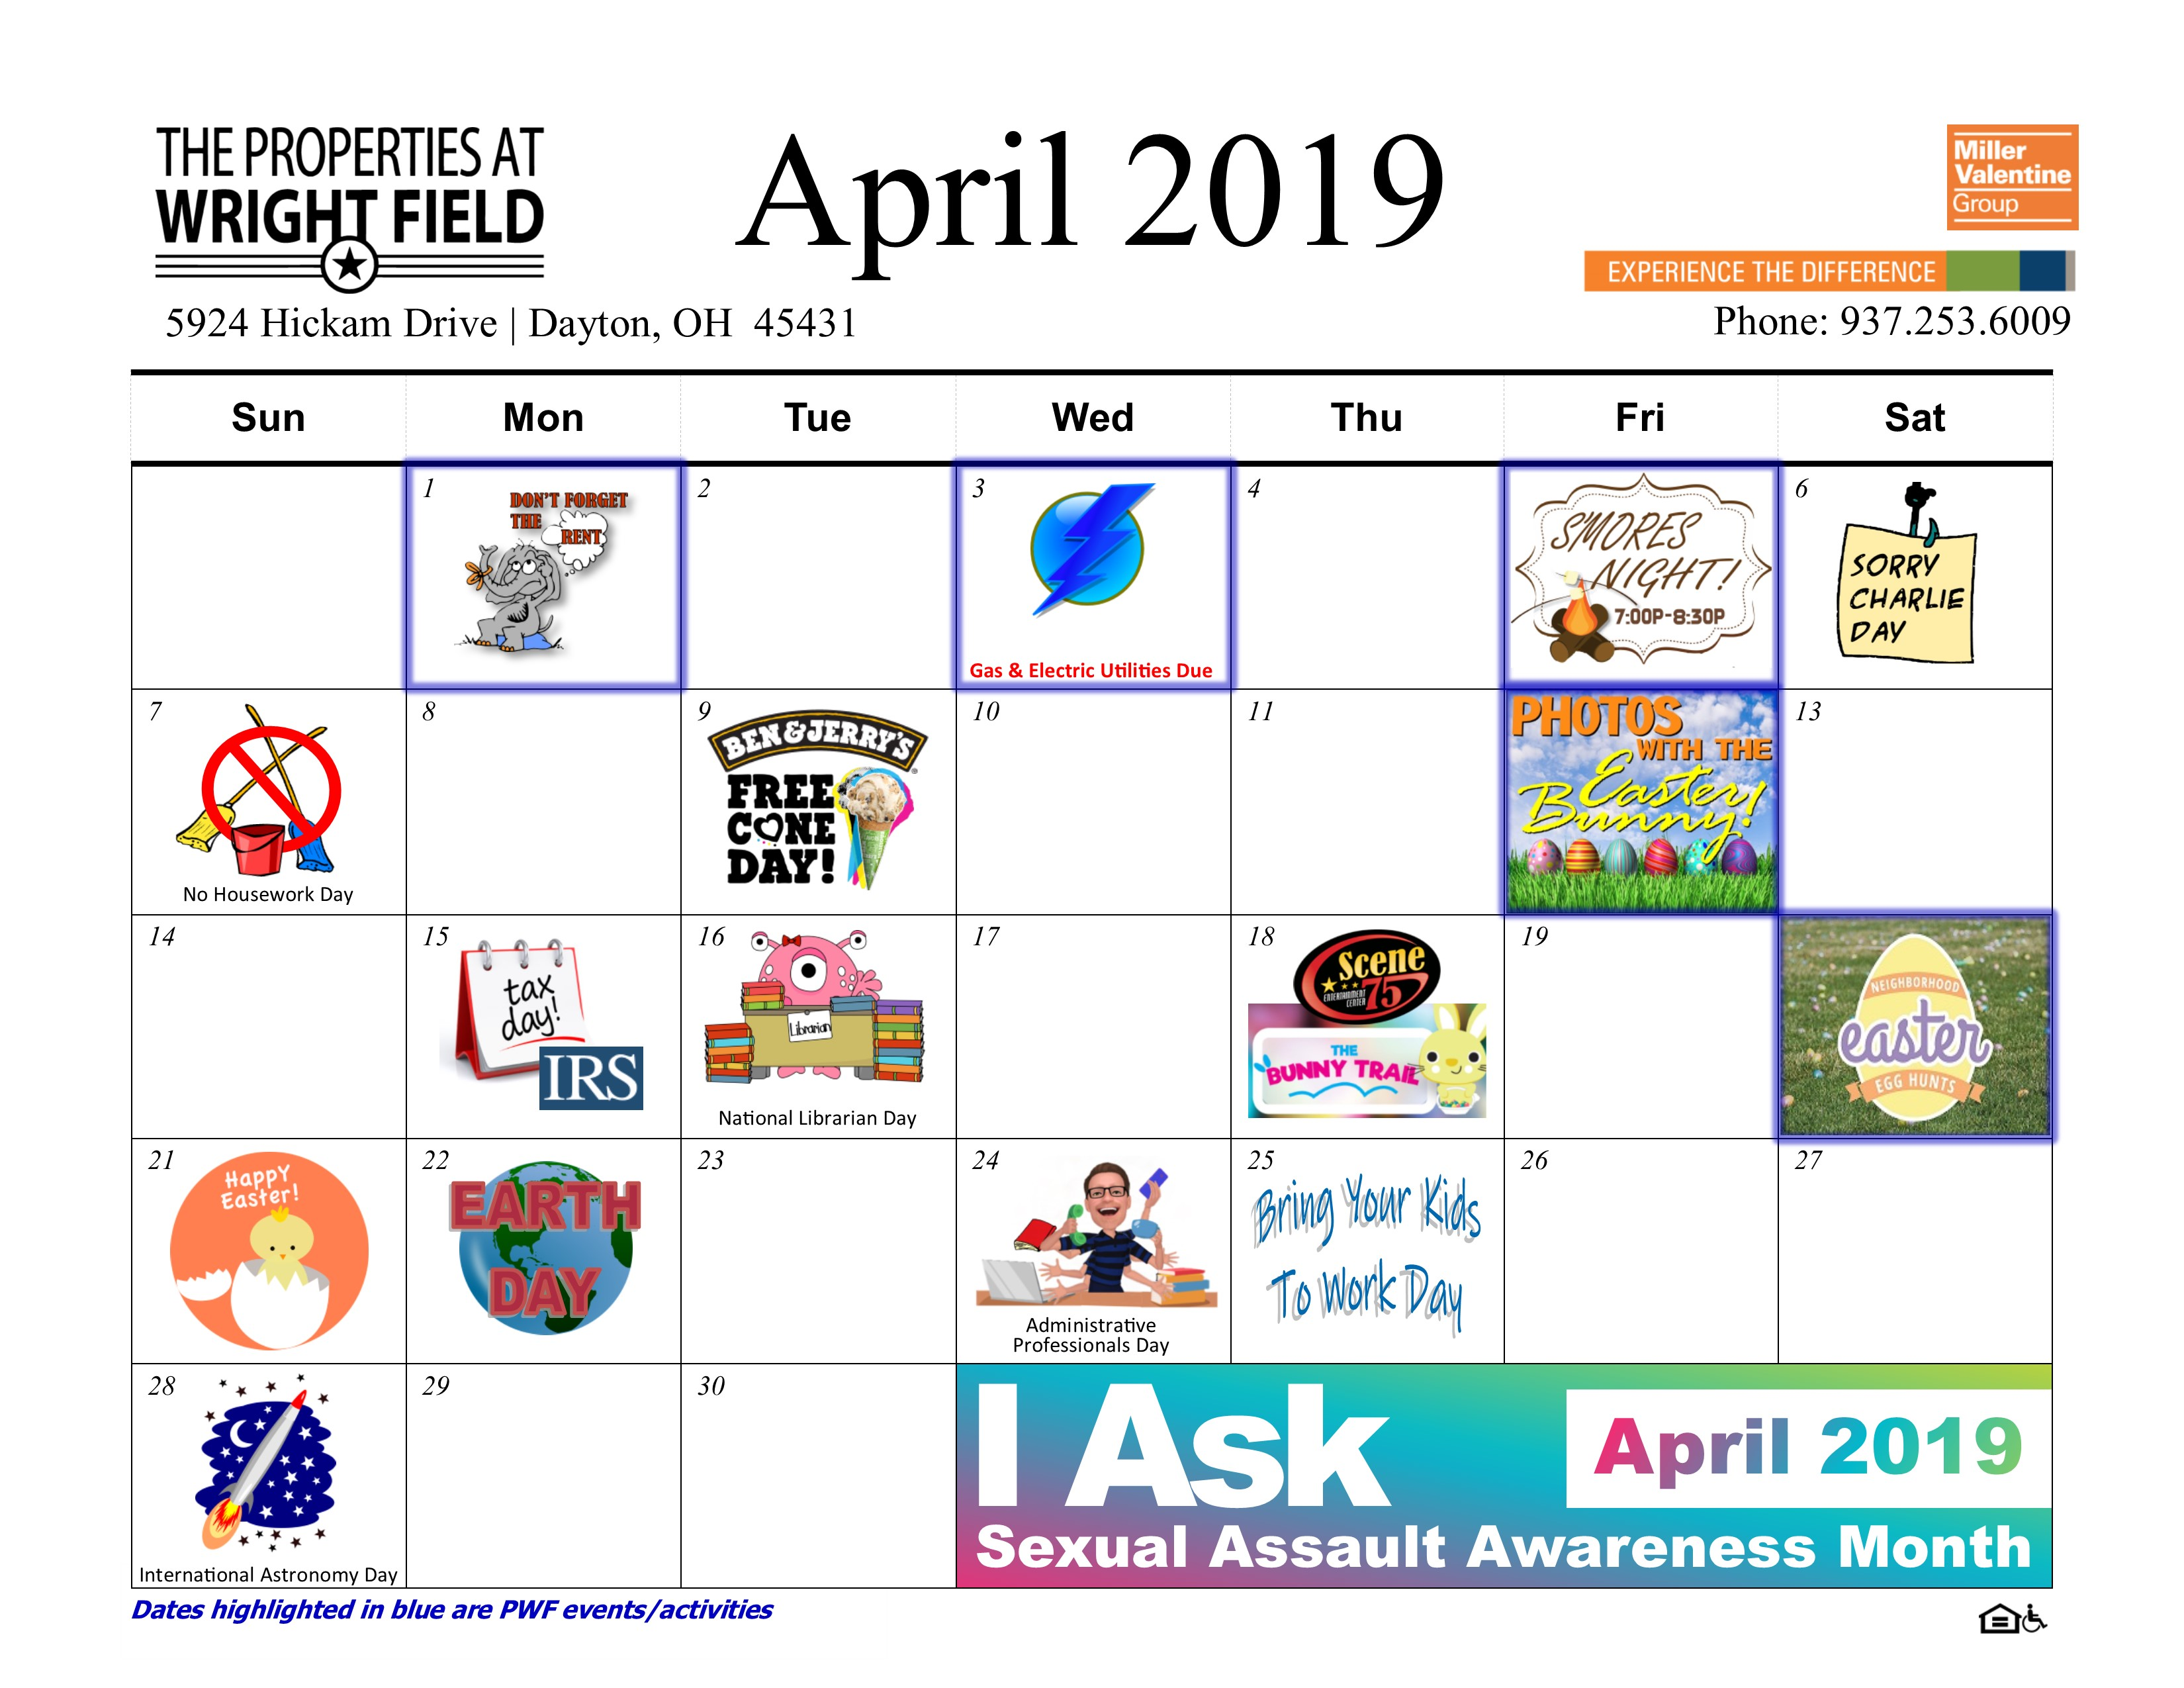 April 2019 Calendar The Properties At Wright Field